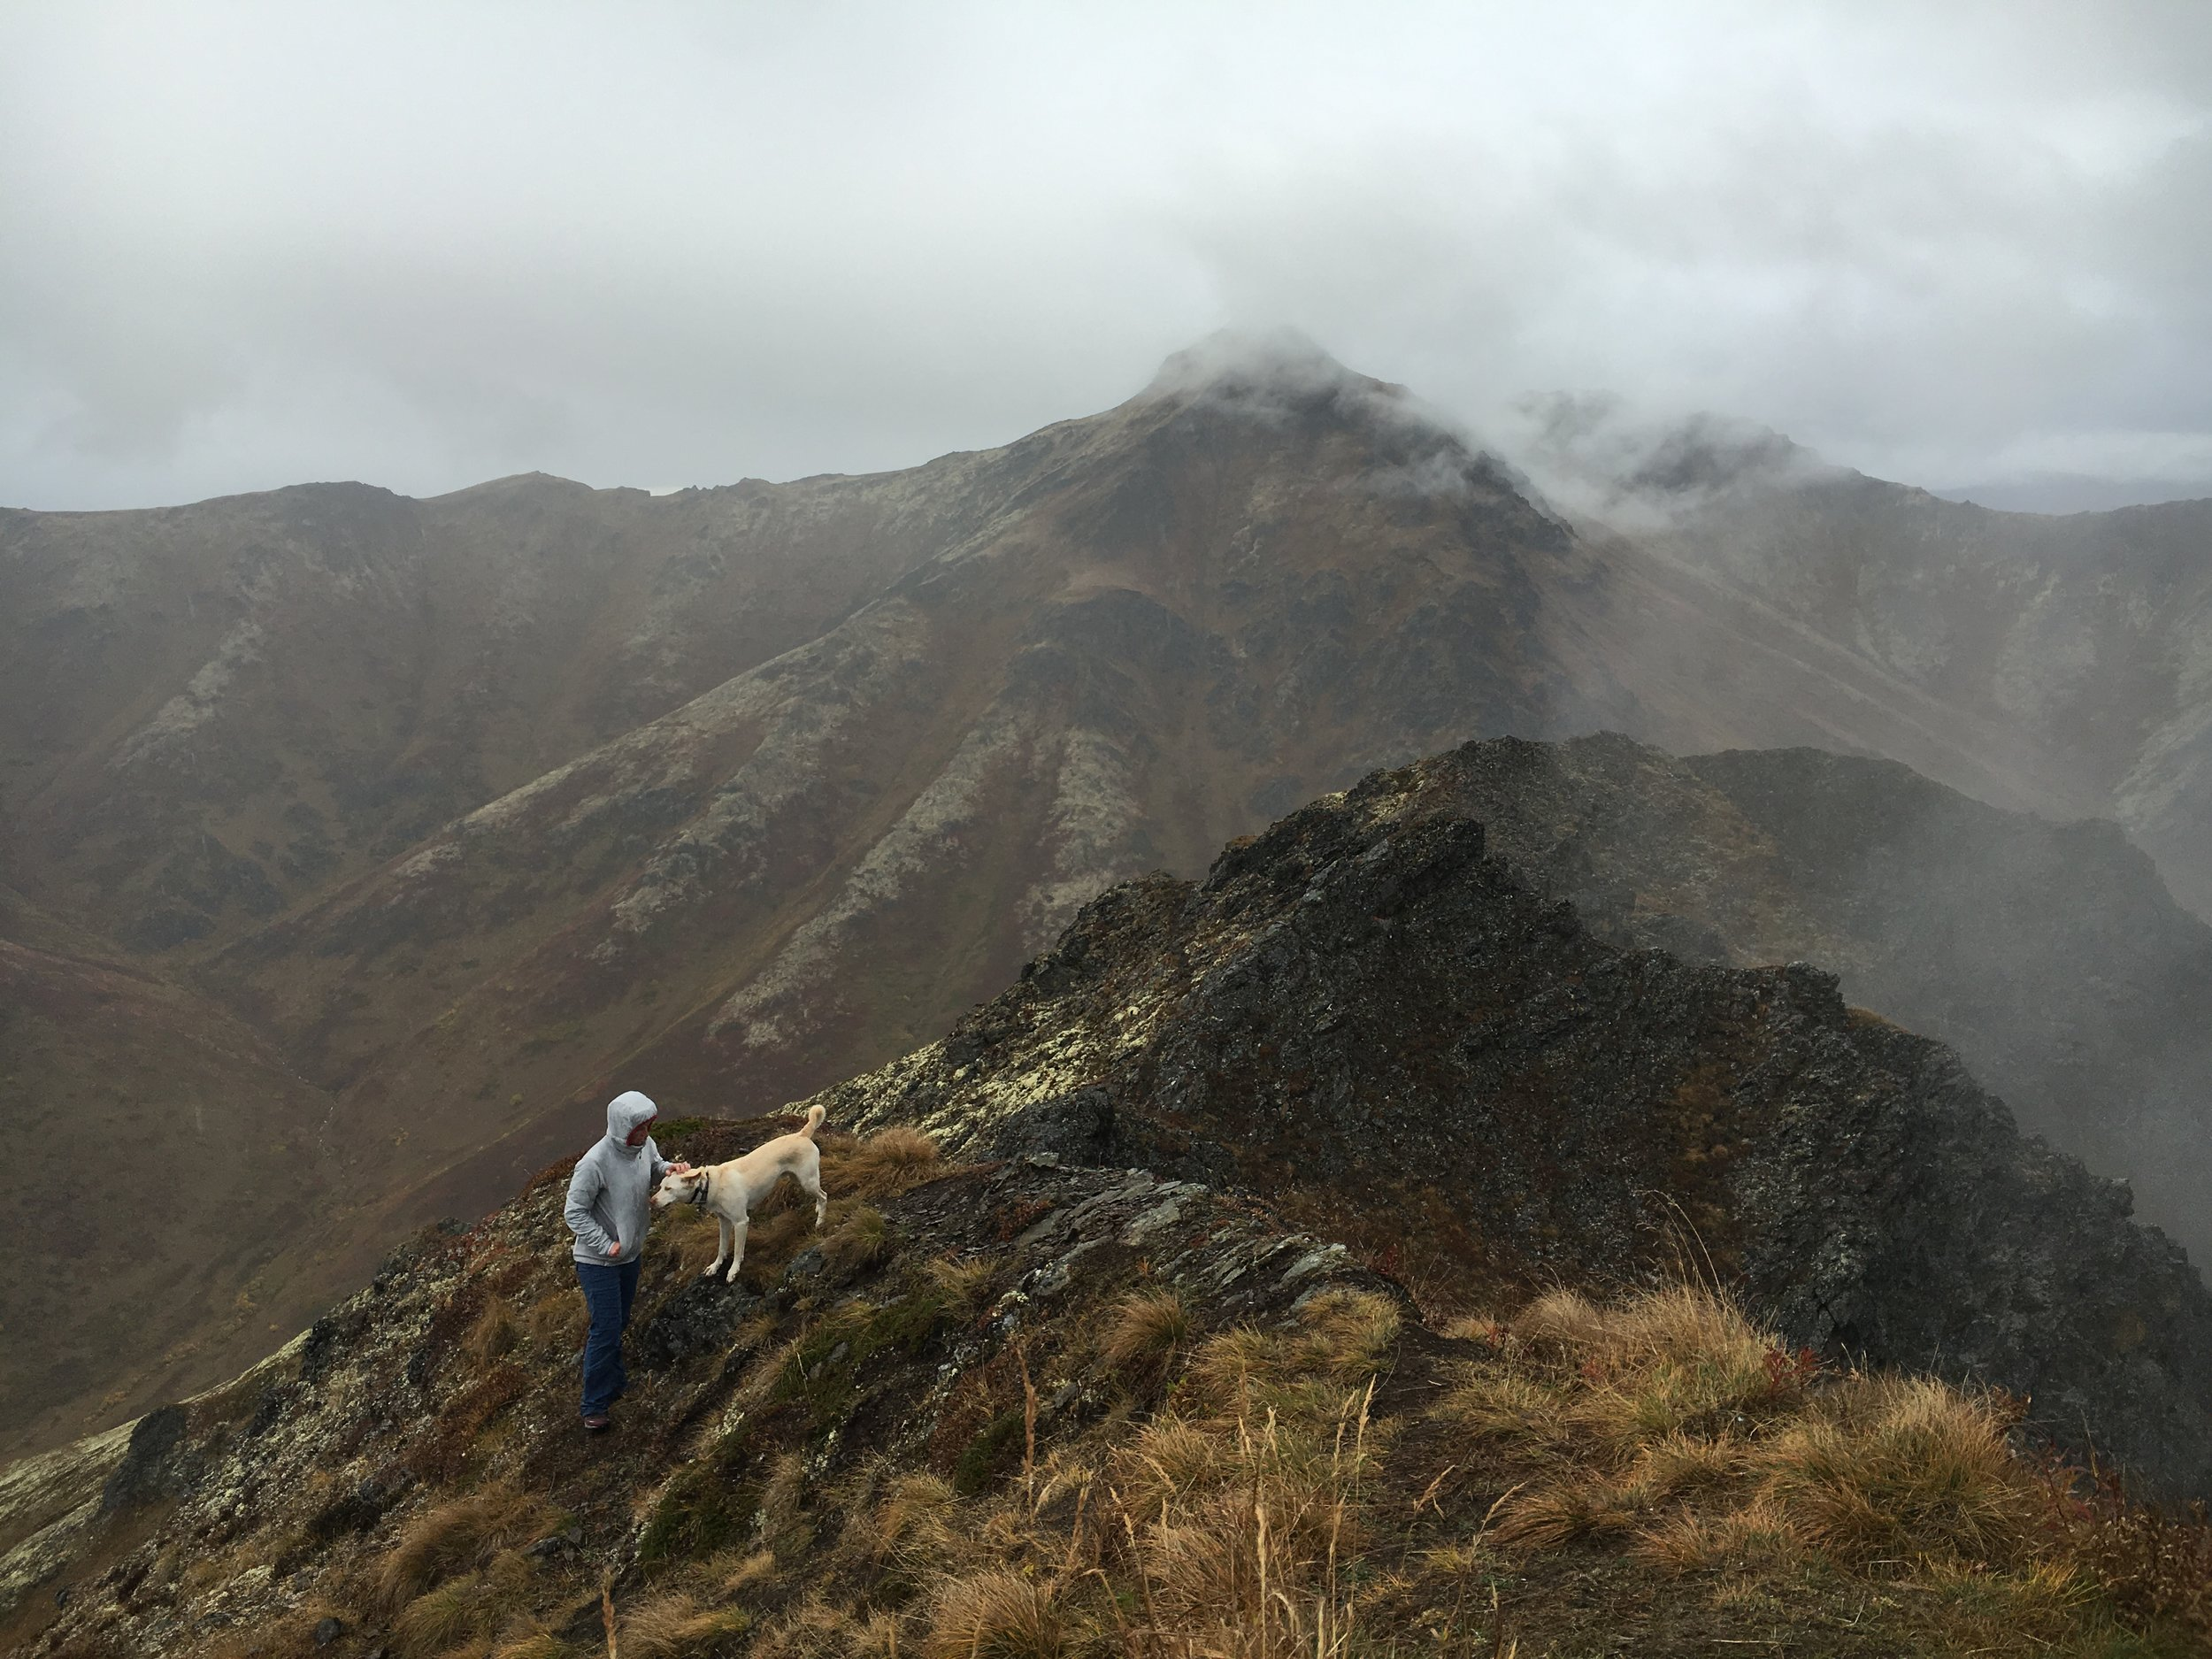 Approaching the summit of Mt. Magnificent